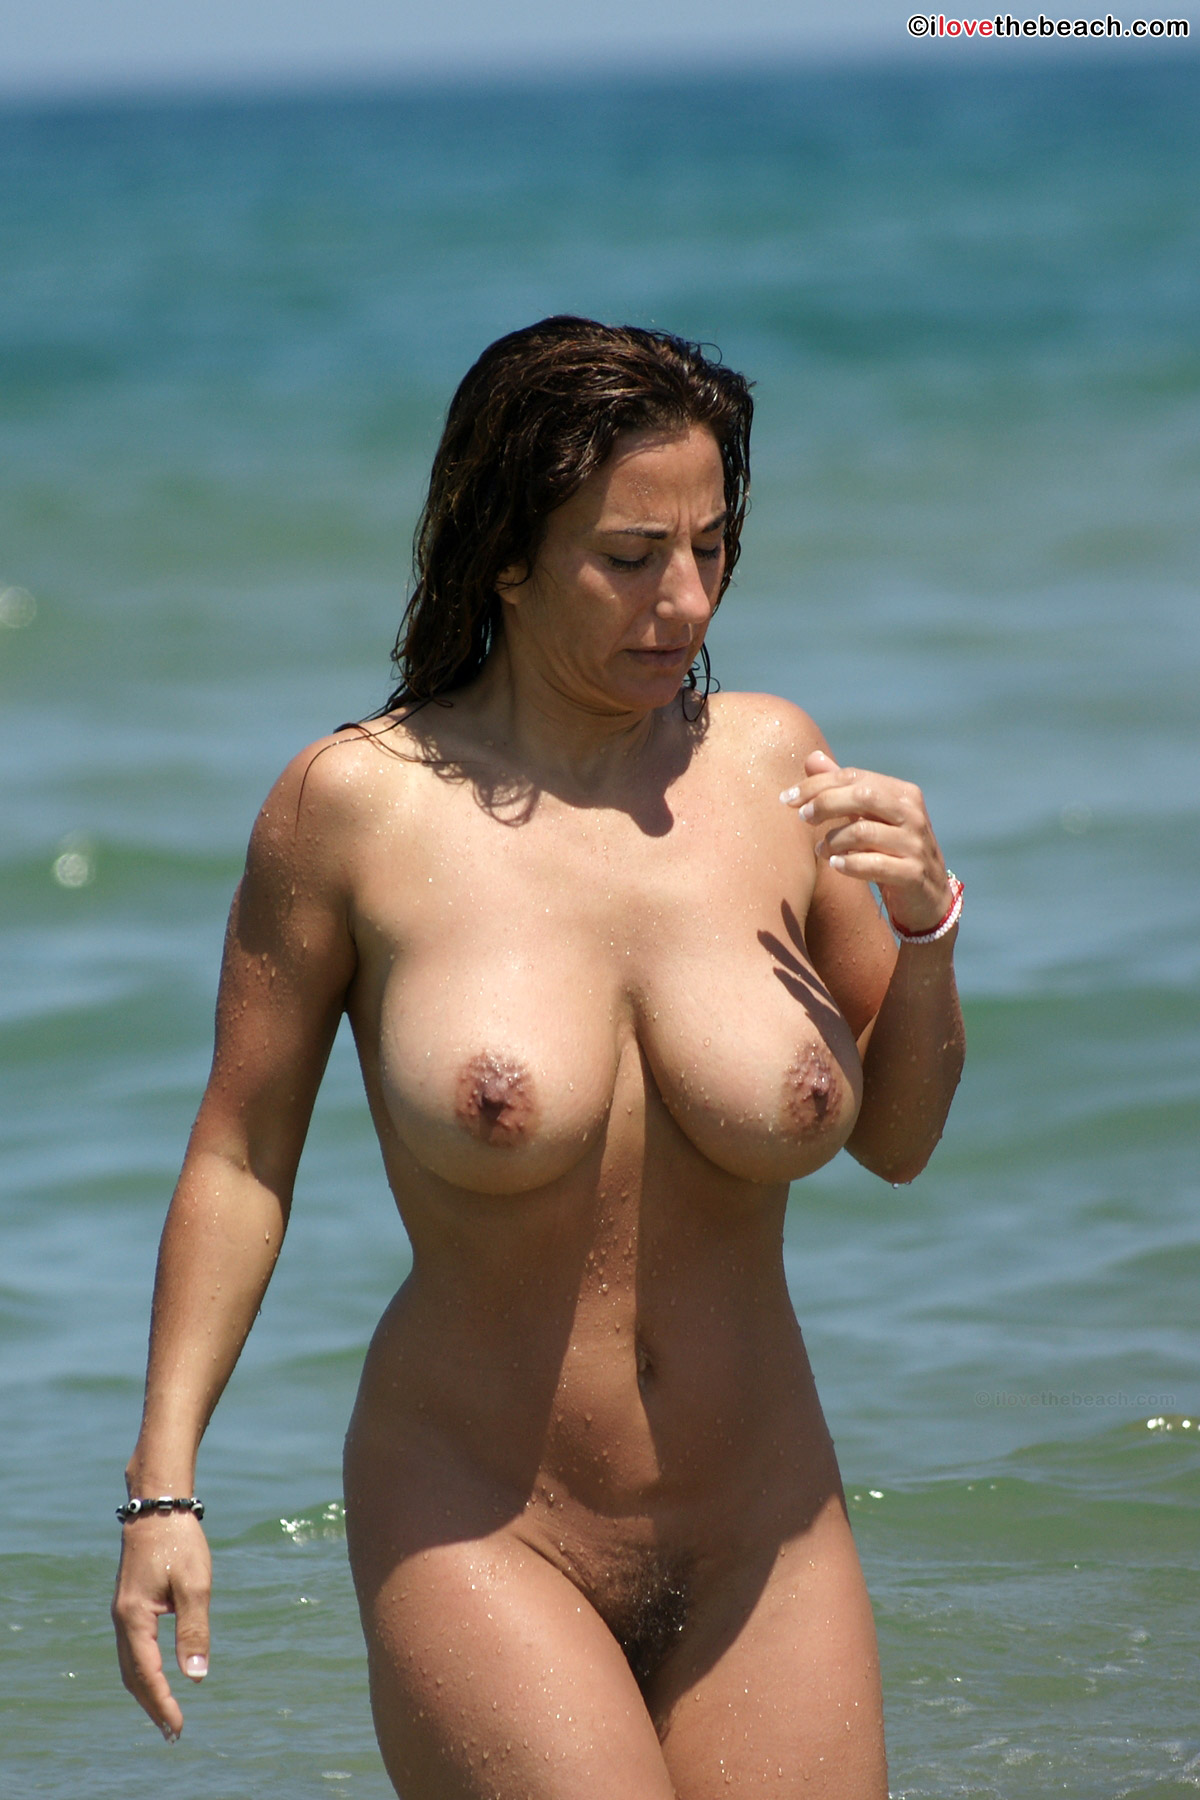 Nude beach hotties